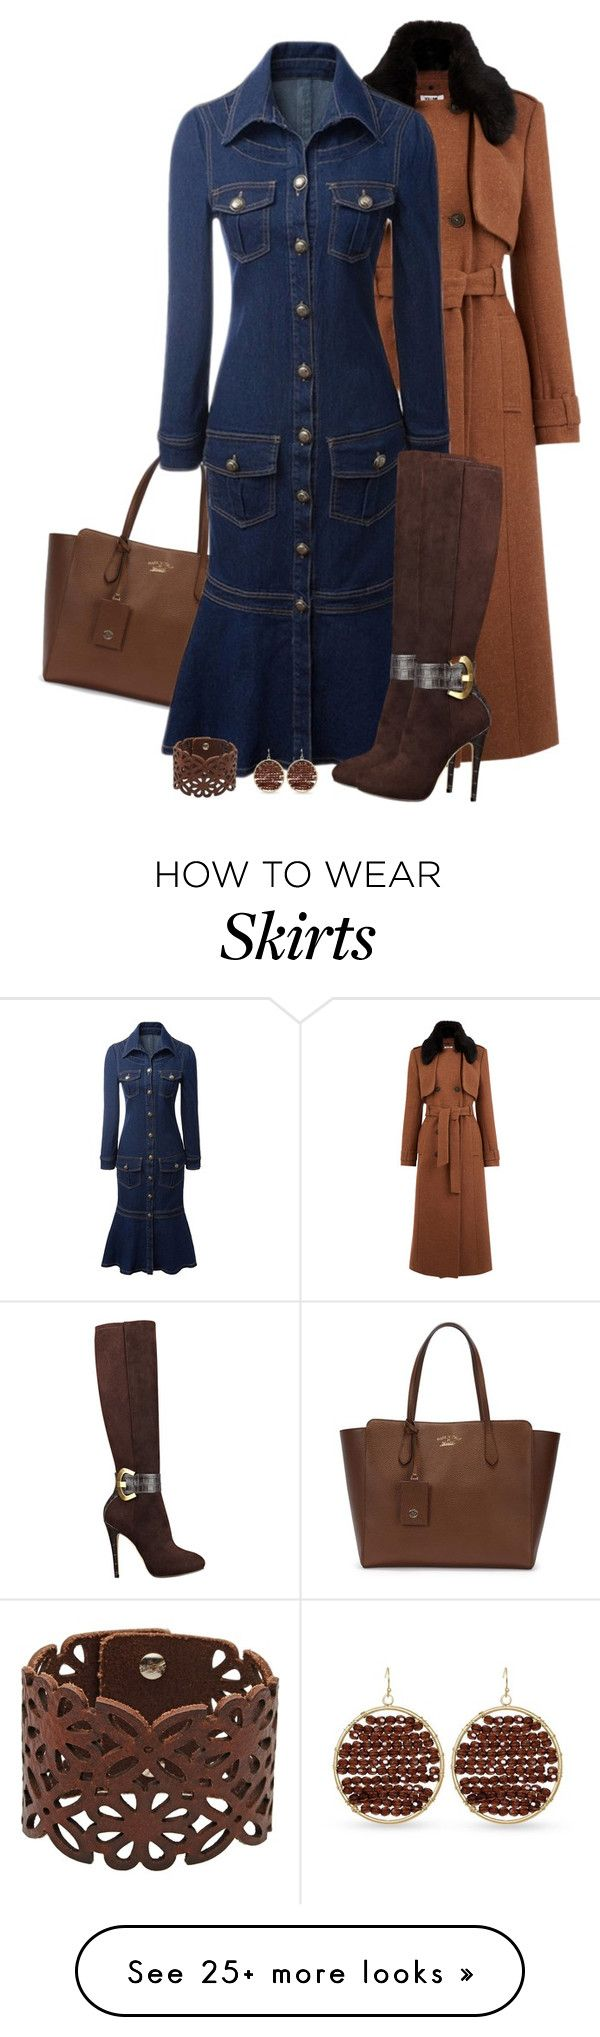 """""""Flounce denim dress"""" by kamkami on Polyvore featuring Gucci, Warehouse, GUESS, LIU•JO and Towne & Reese"""